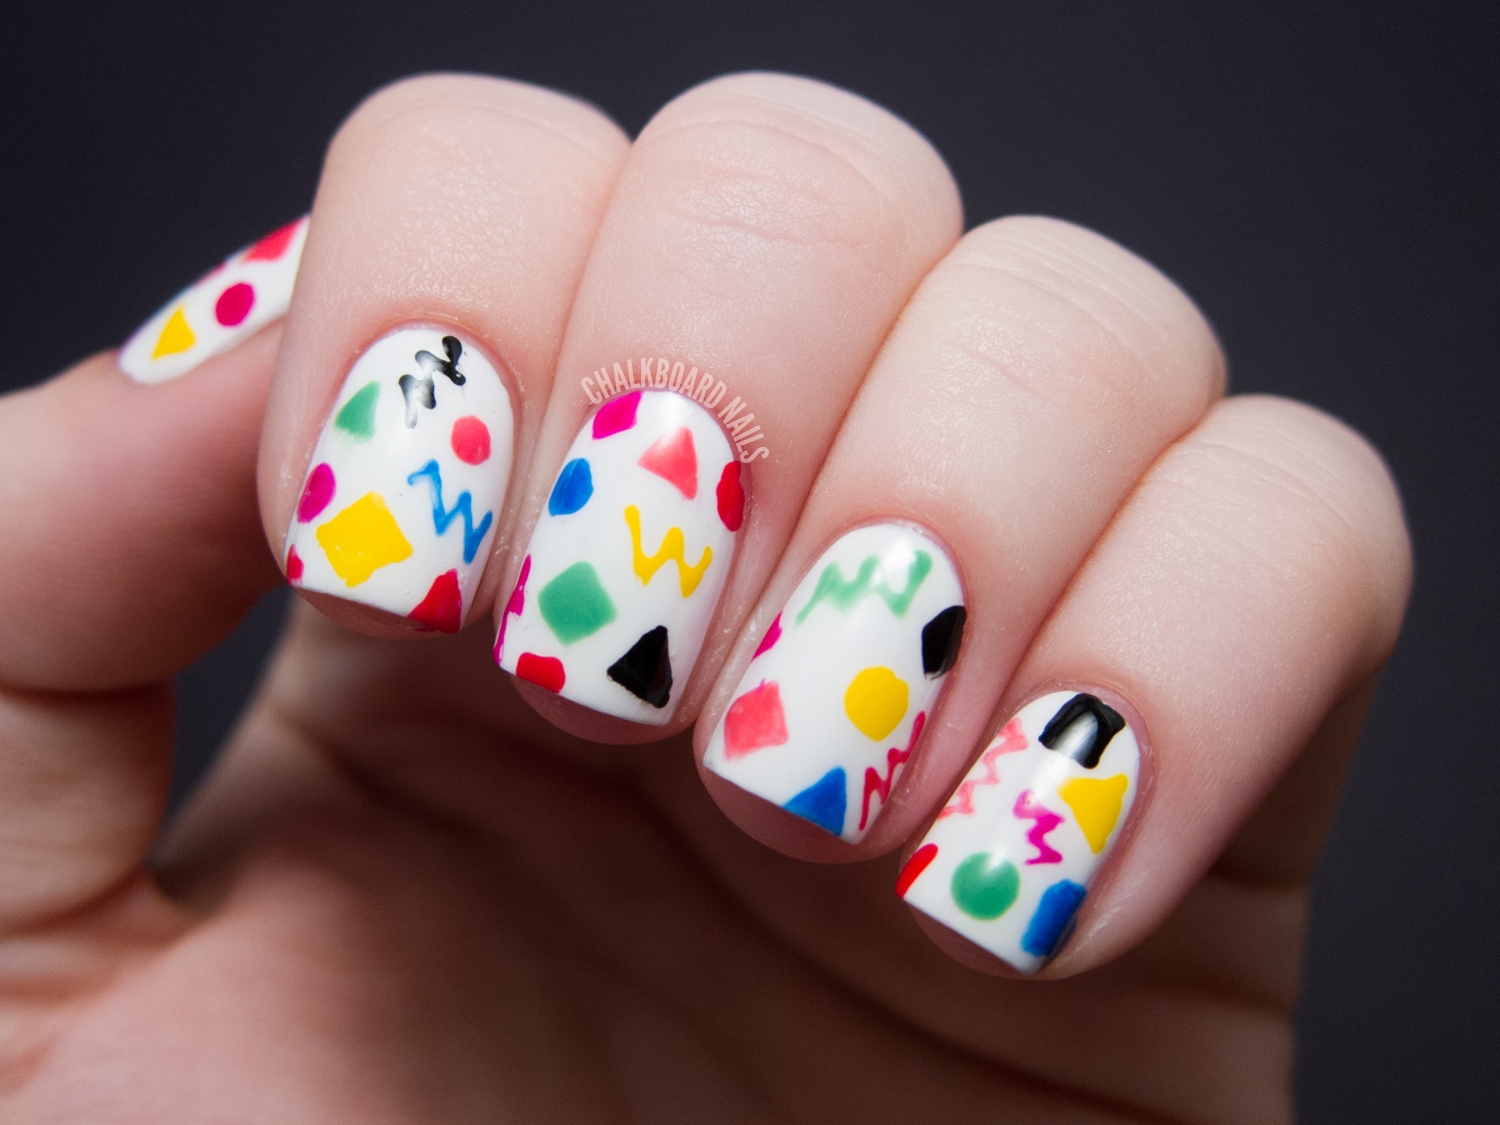 Kindergarten Doodles | Chalkboard Nails | Nail Art Blog